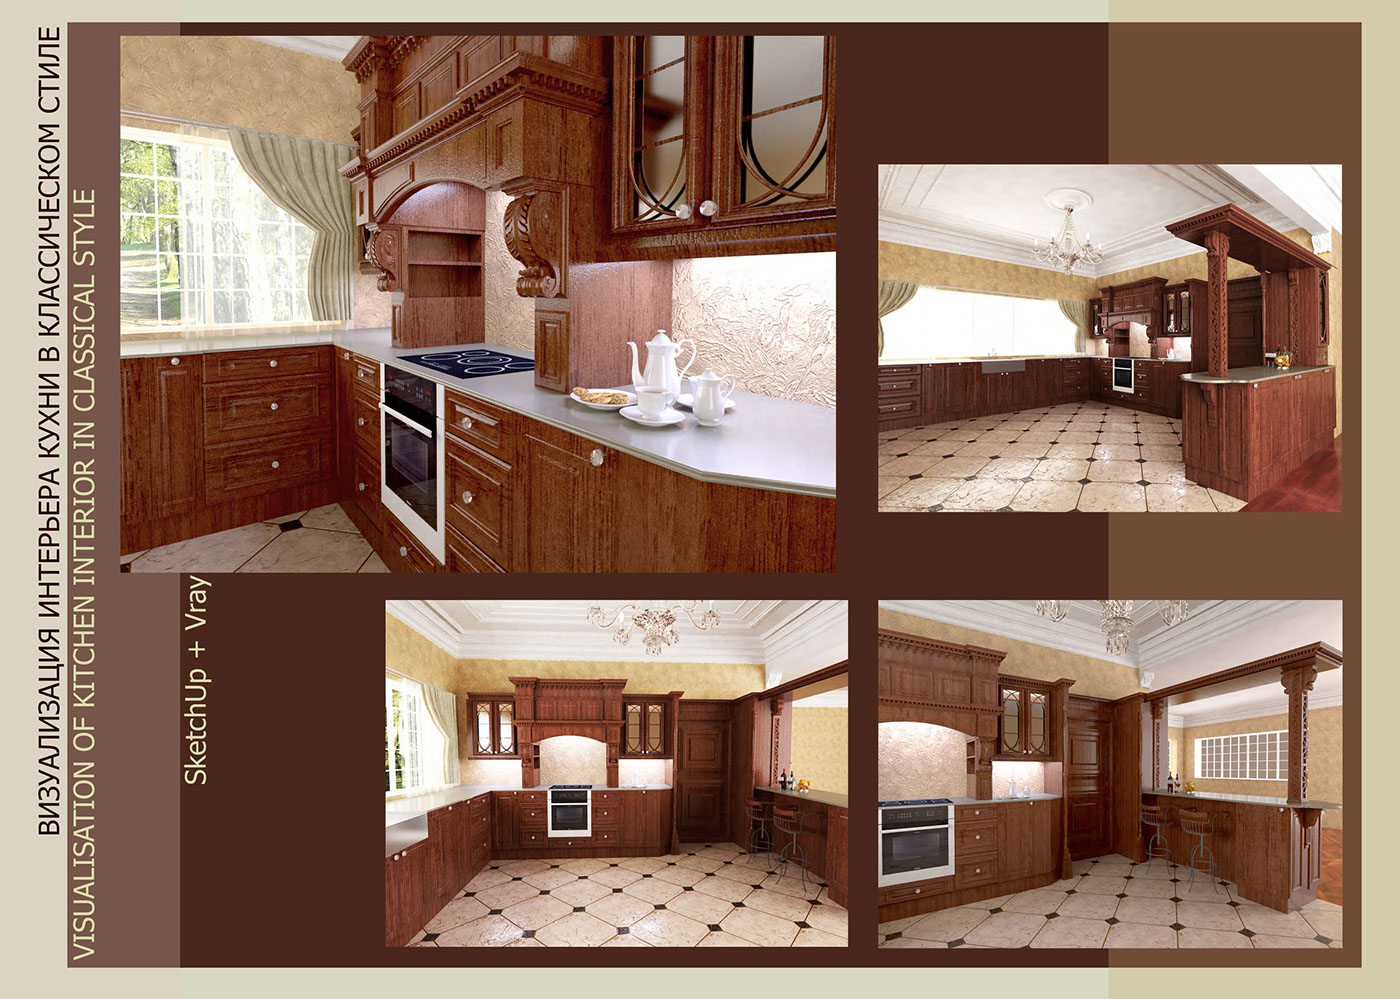 Visualisation of the kitchen sketchup vray on behance for Kitchen designs sketchup